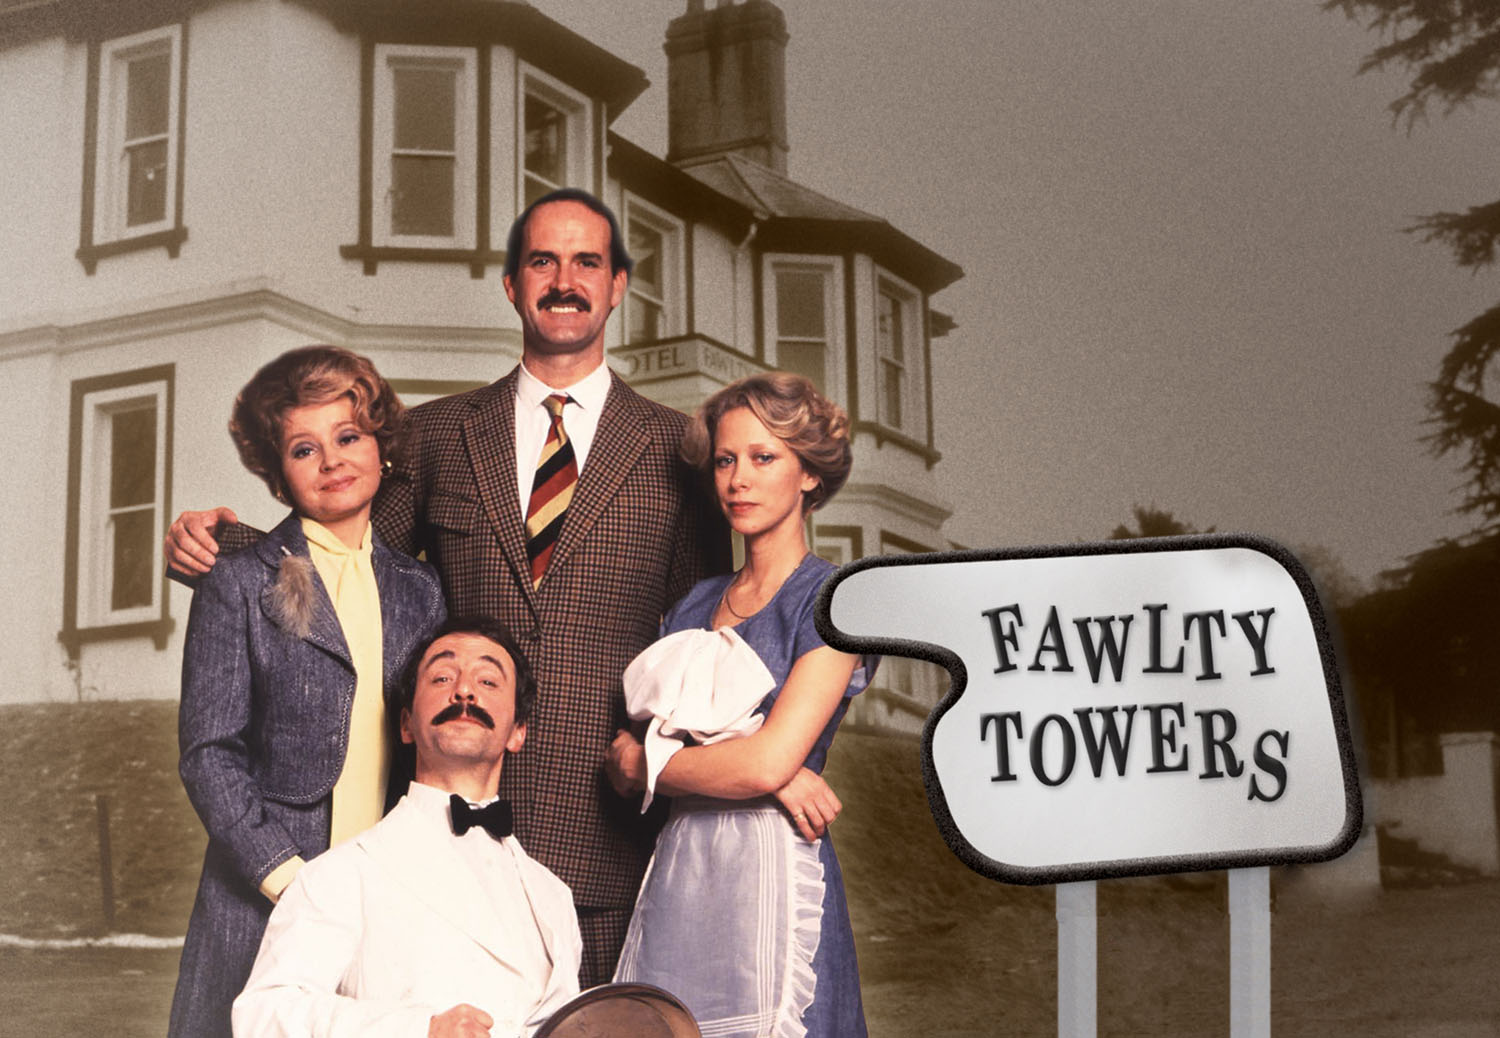 Cast of Fawlty Towers - Copyright @BBC